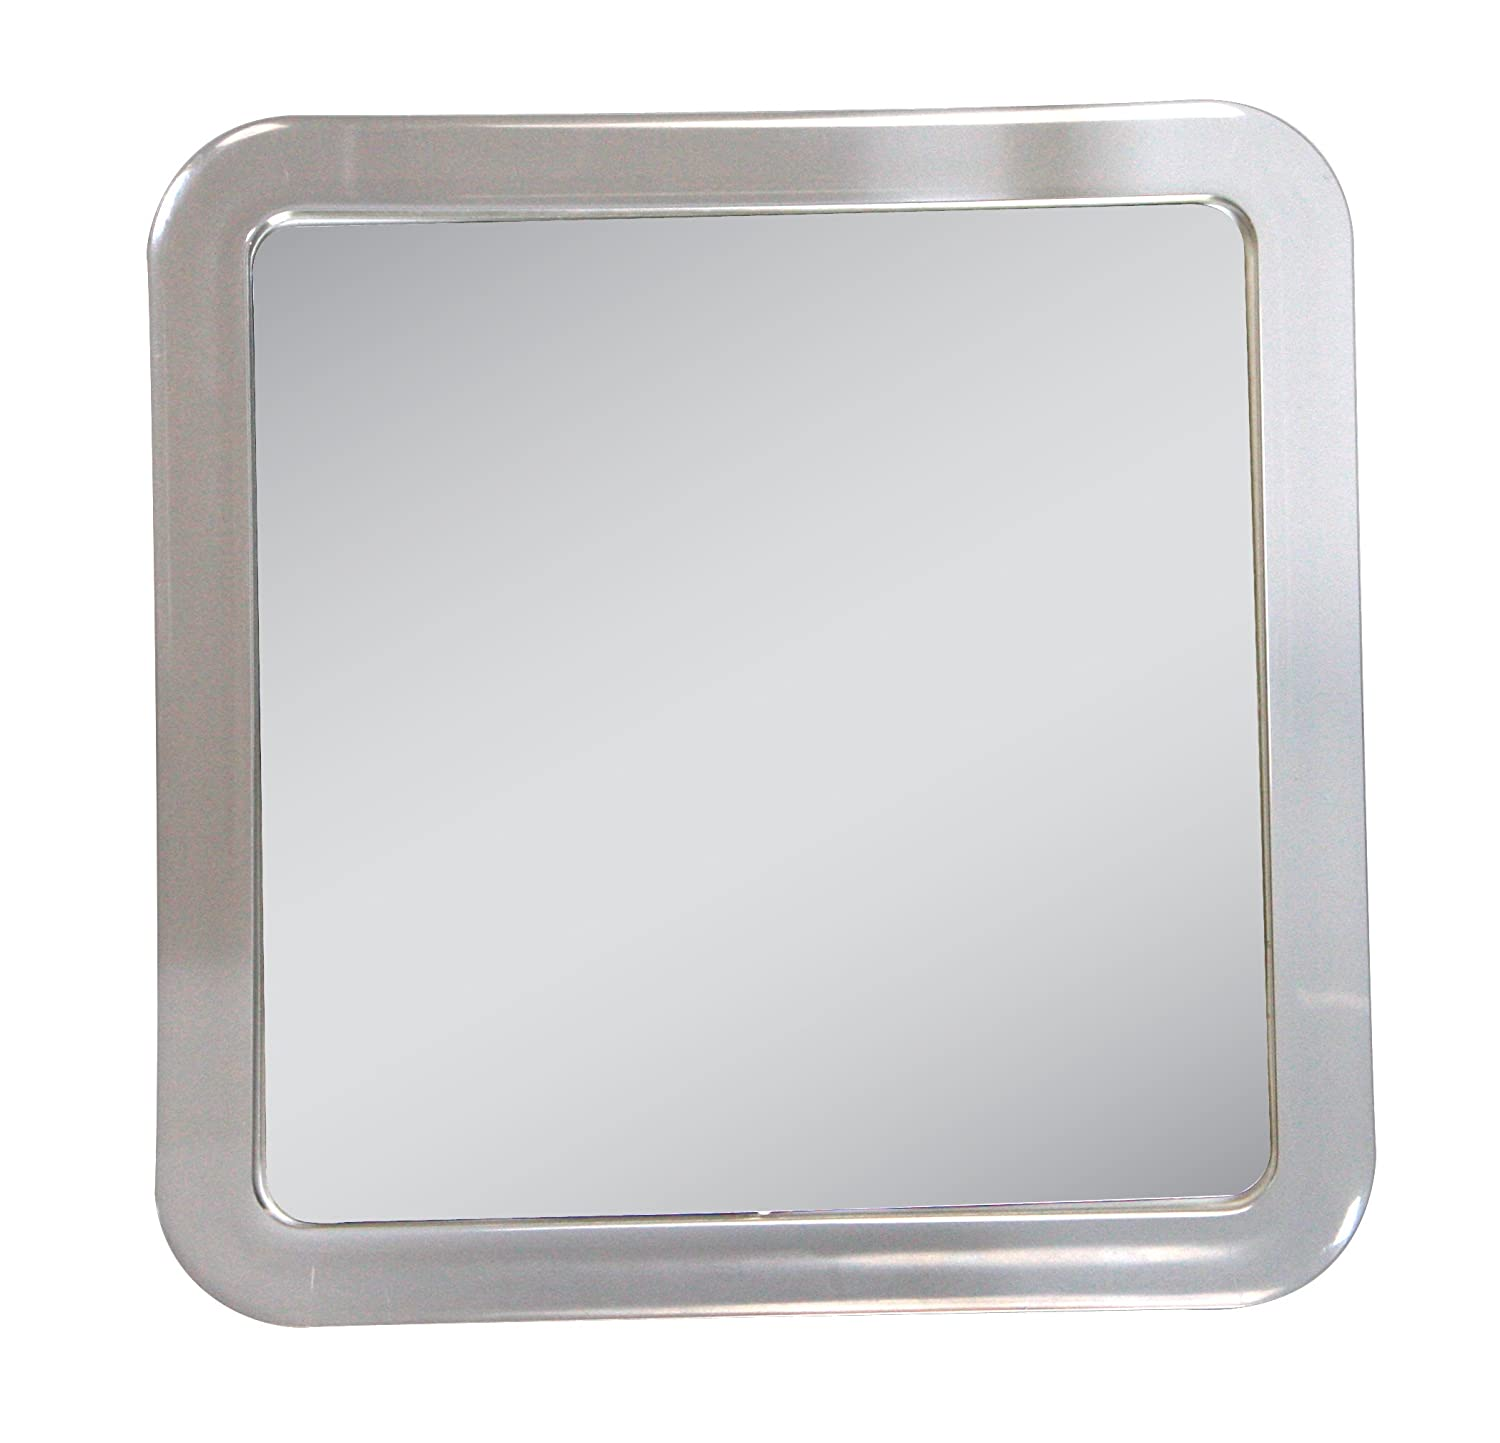 Amazon.com : Zadro Z'swivel Power Suction Cup Mirror, White & Chrome :  Personal Makeup Mirrors : Beauty